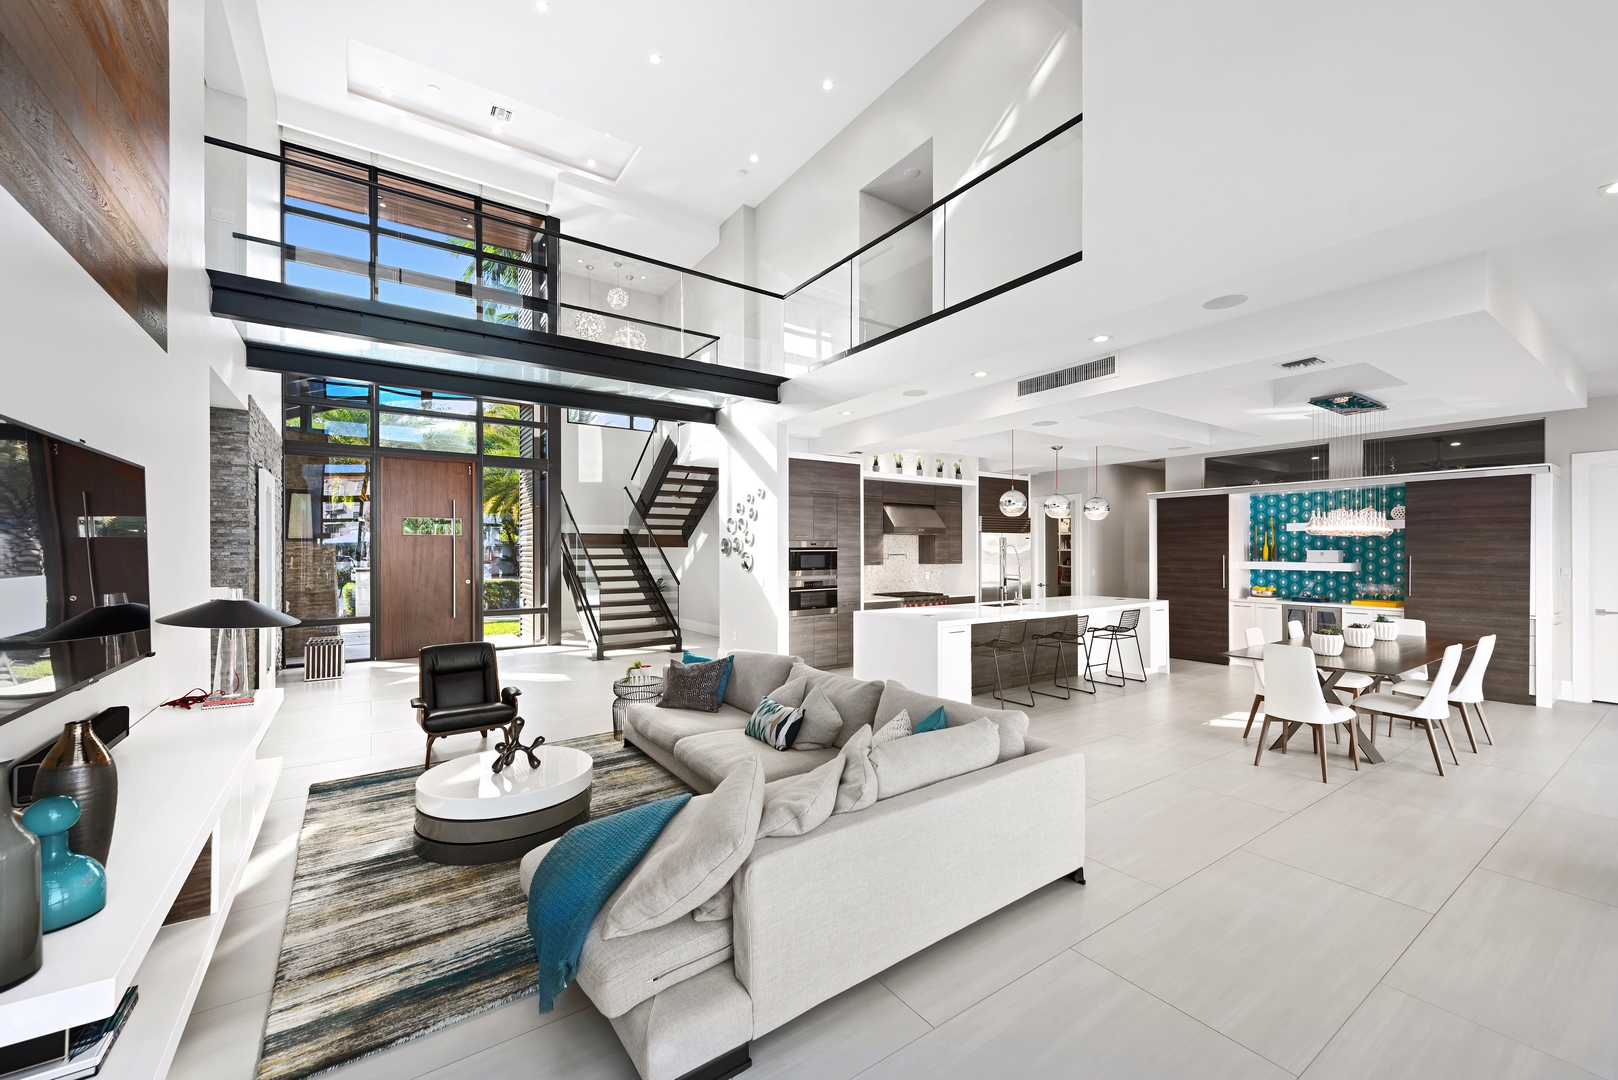 3D Tour - Take a virtual 3D tour of this new build, modern architectural masterpiece.